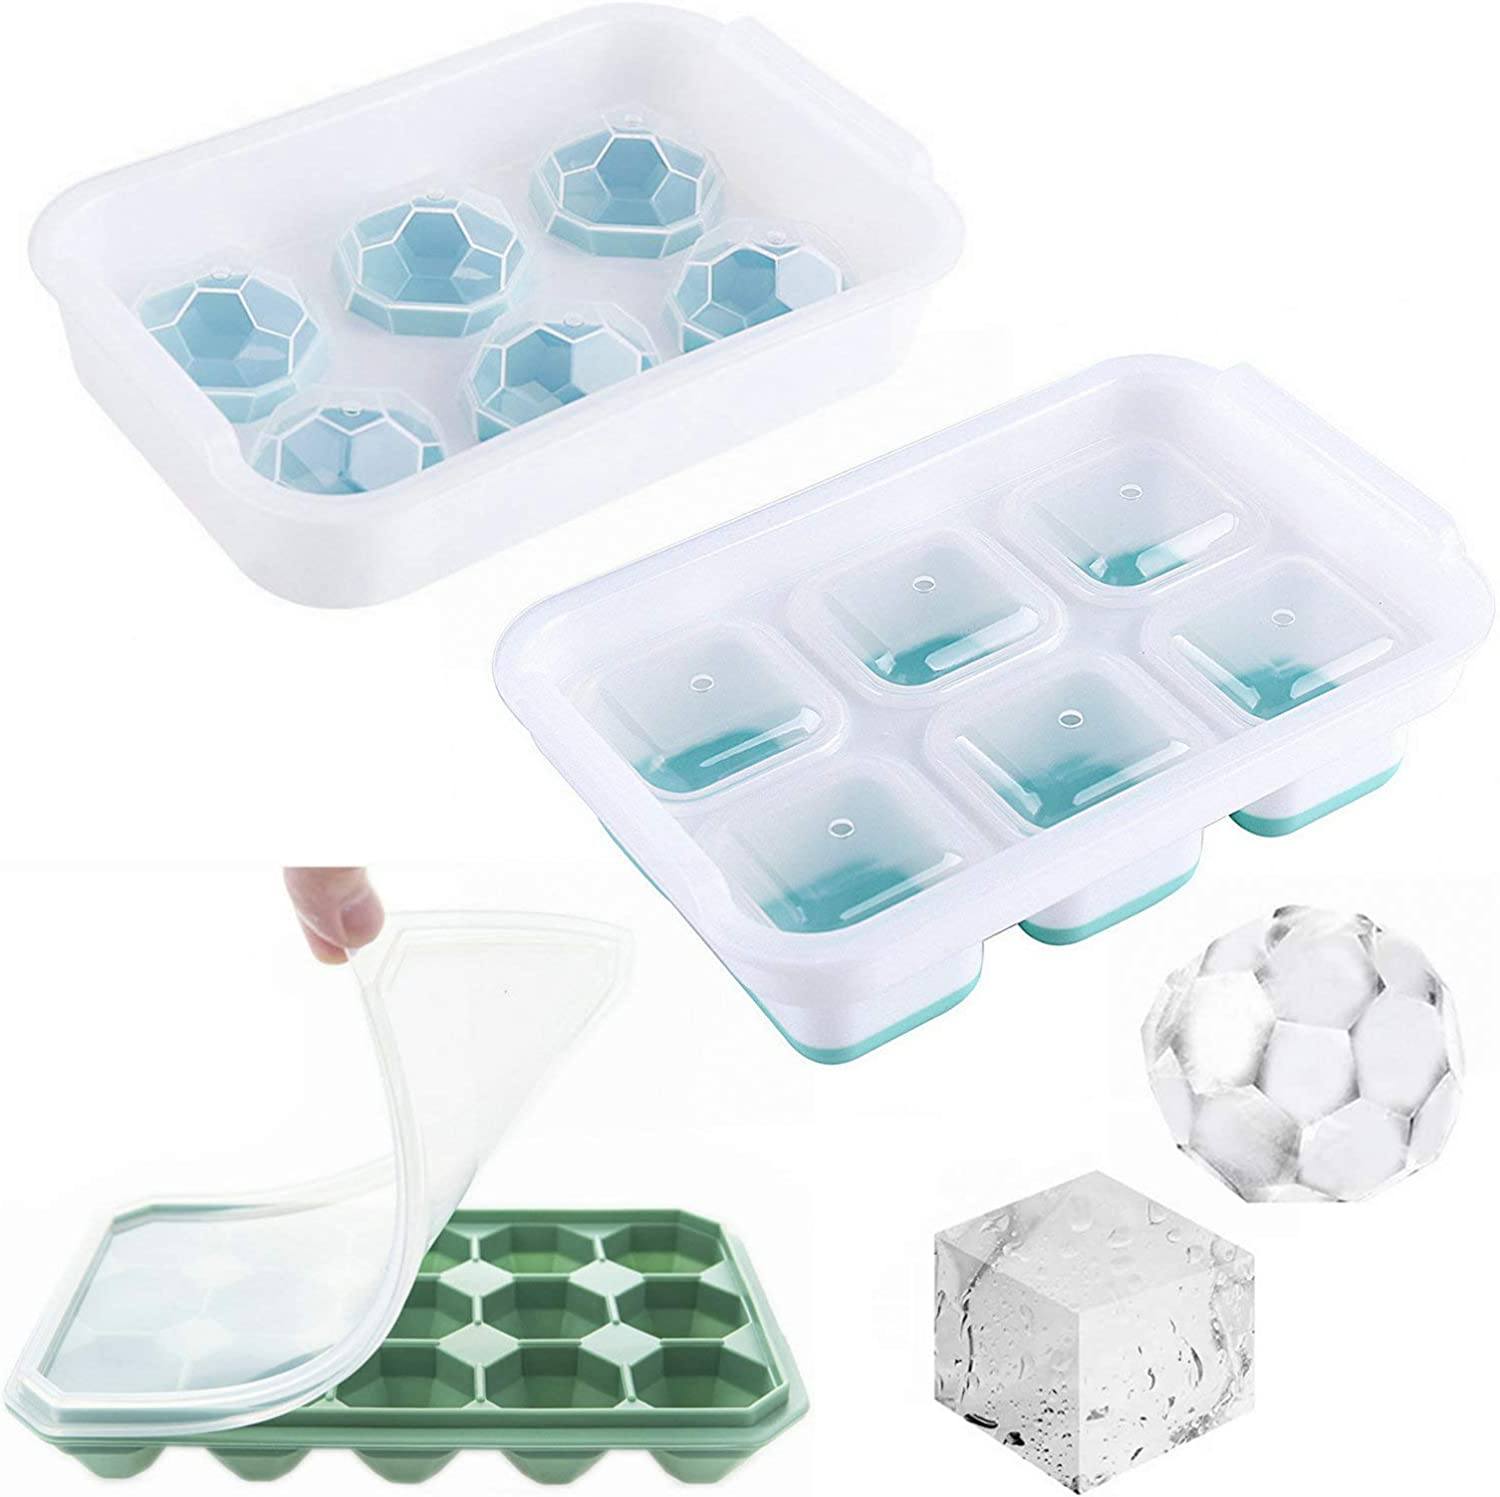 Arestle 3 pack Food Safe Large 6 Square/6 Sphere Ball/ 15 Diamond Ice Cube Trays with Lid for Whiskey, Cocktails, Wine, Juice, Baby Food (Aqua)